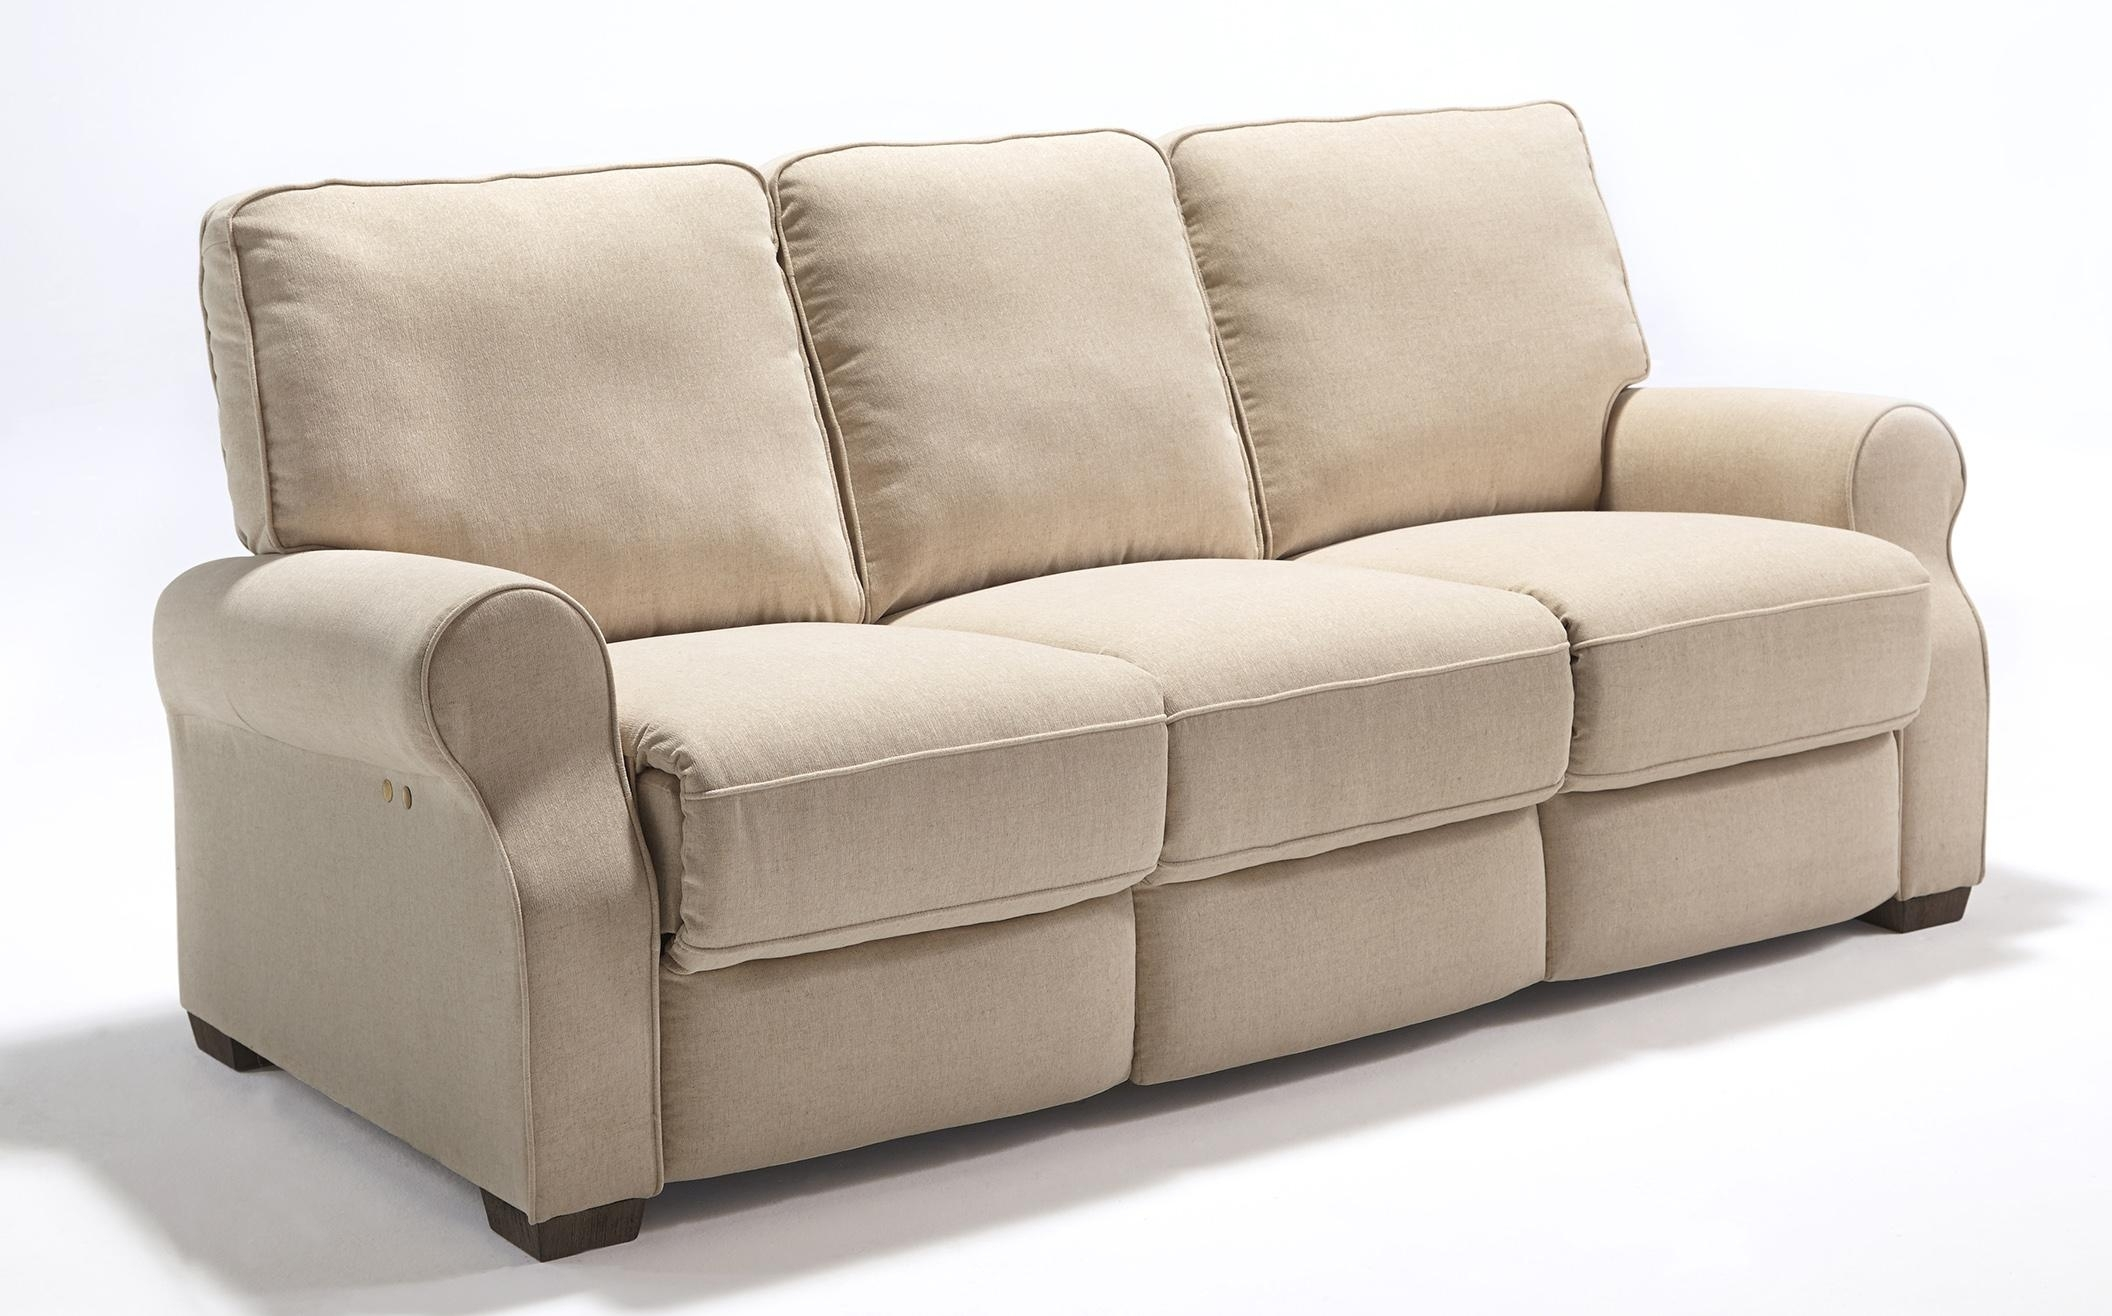 Brilliant Recliner Sofas On Furniture Power Recliner Sofa With Regard To Recliner Sofas (Image 3 of 10)